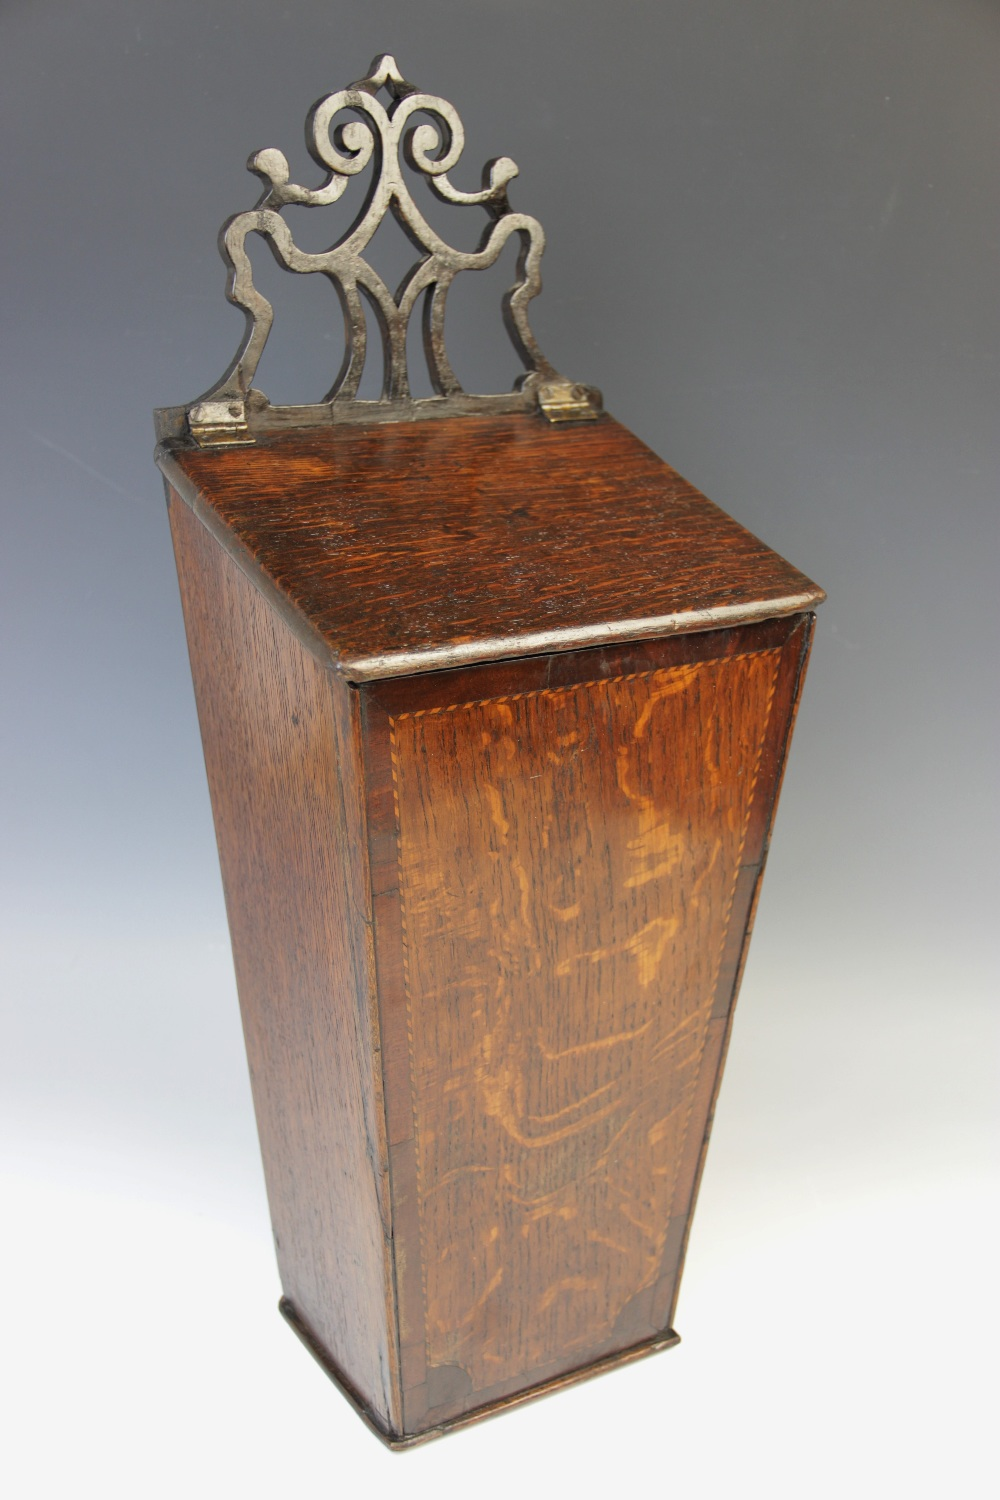 A George III oak and mahogany cross banded candle box, of typical tapering form, with associated - Image 2 of 2